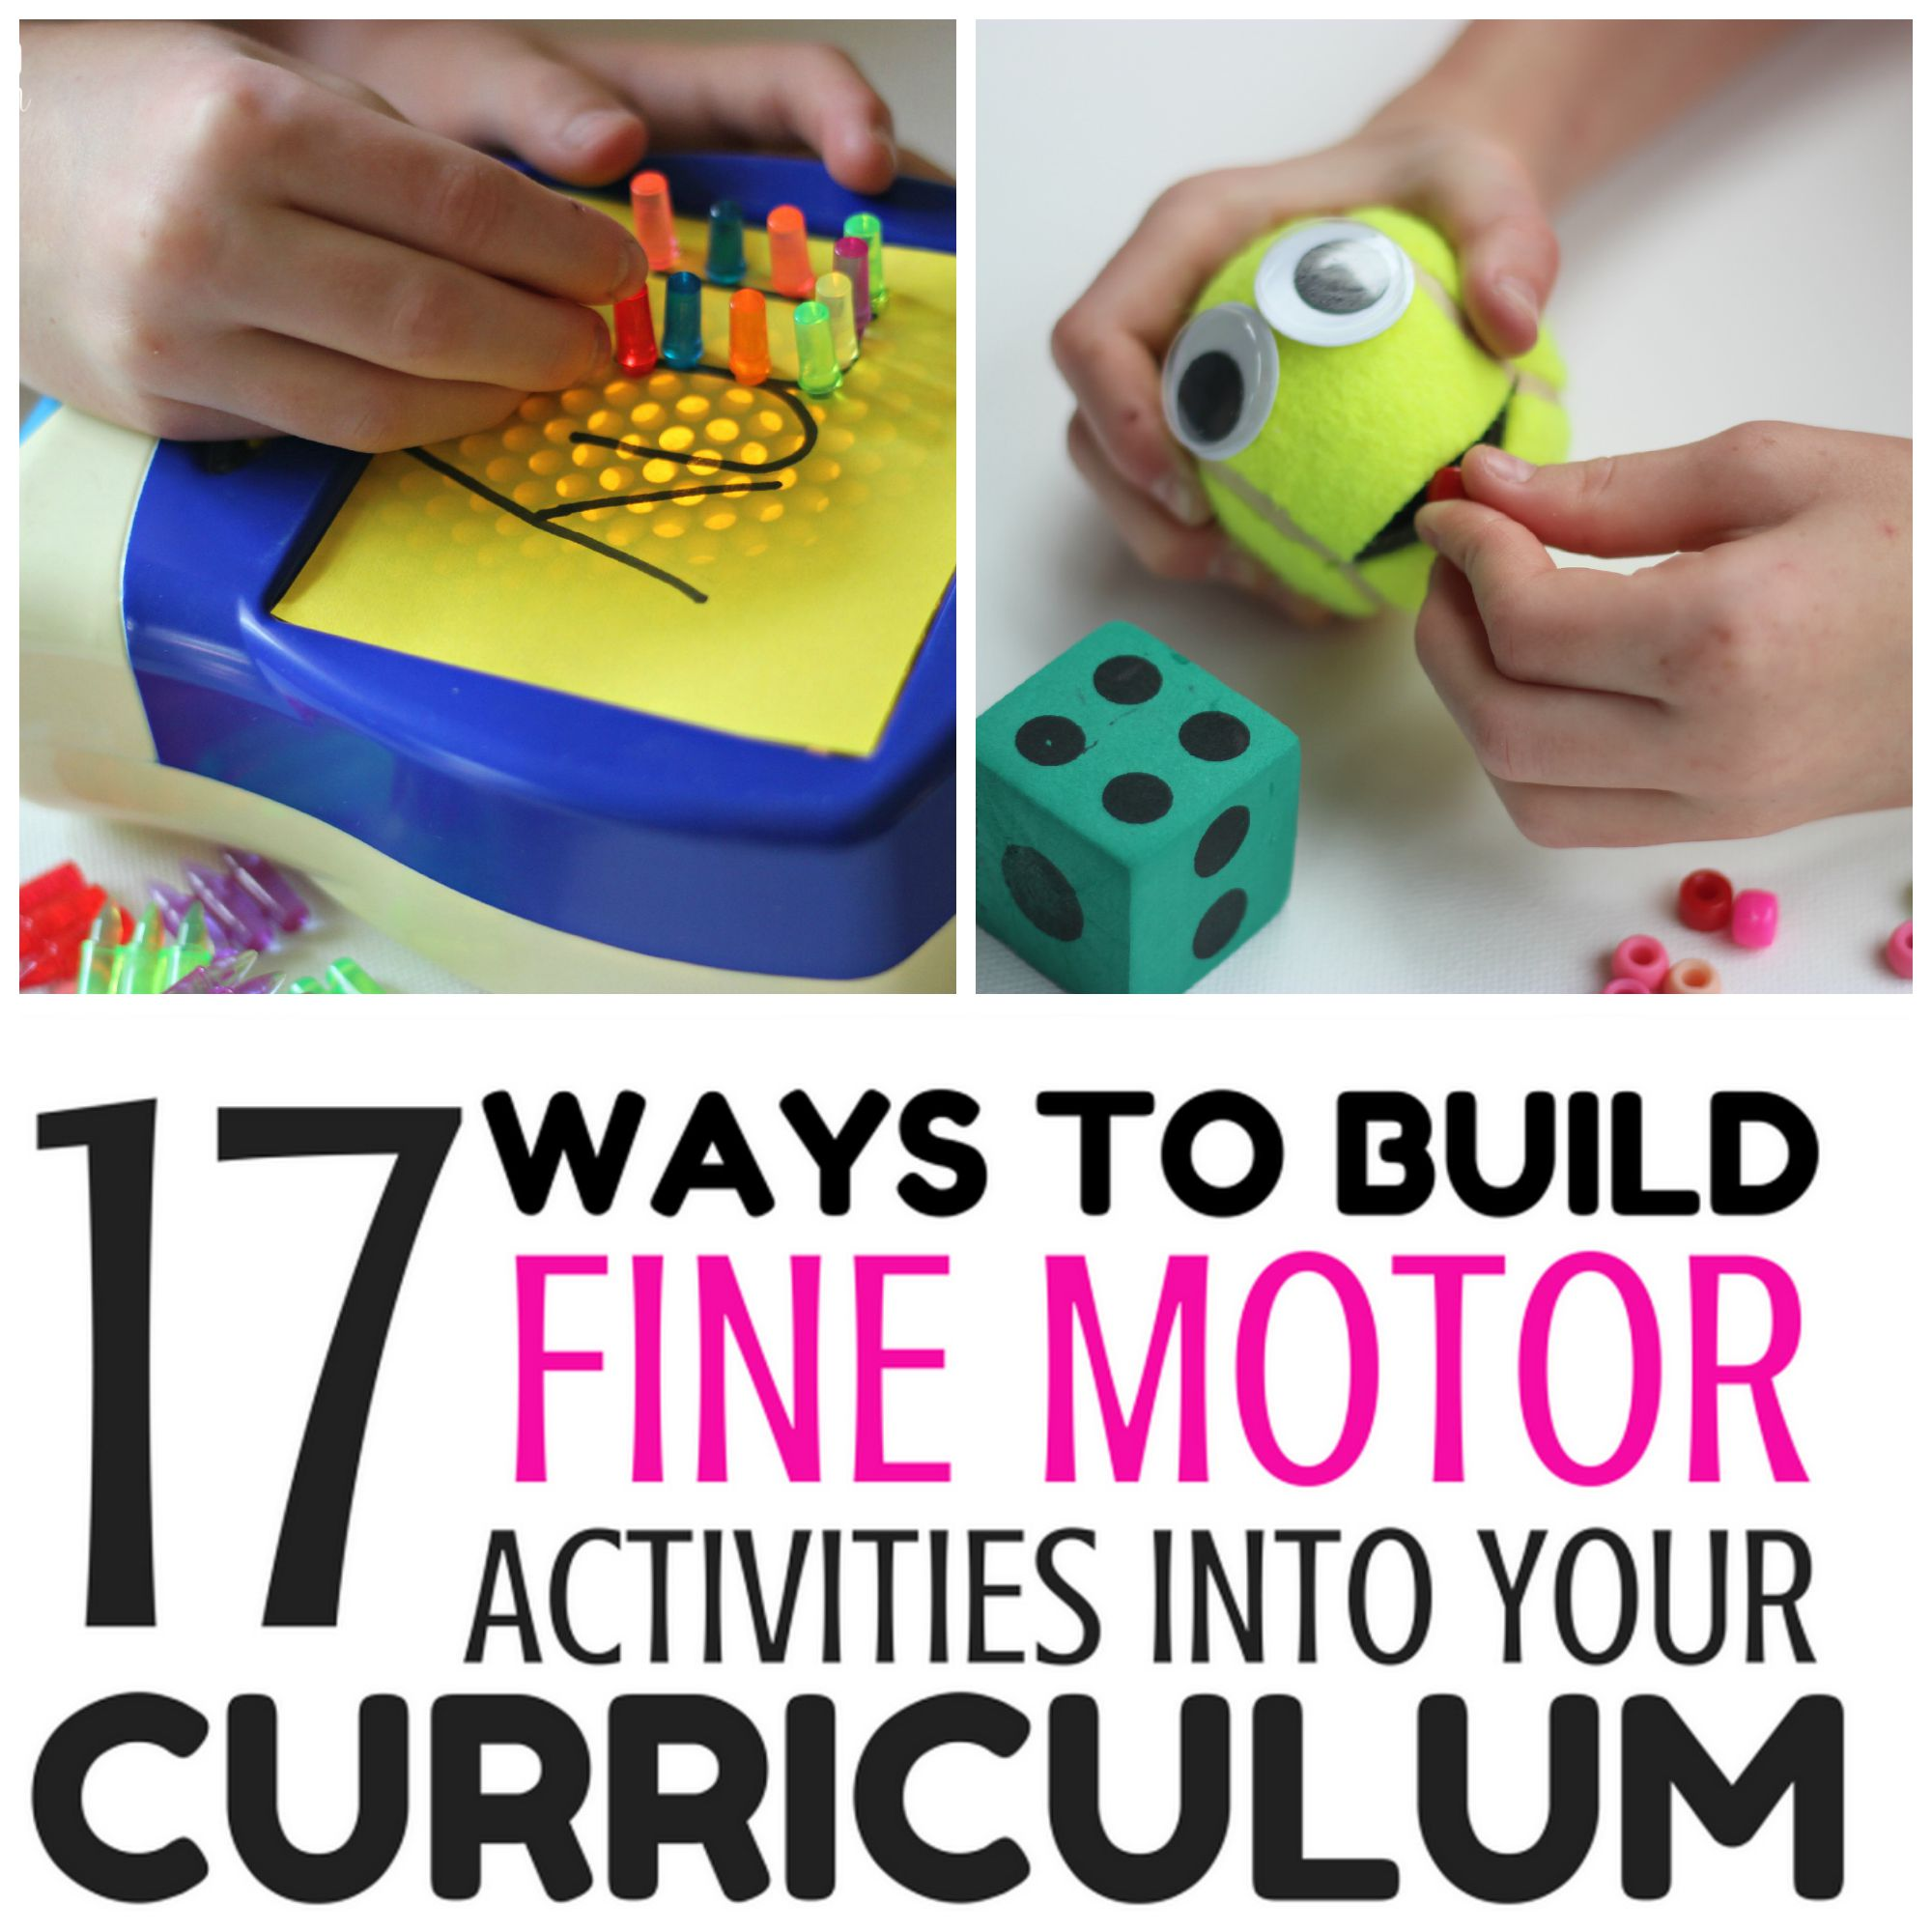 17 Ways To Build Fine Motor Activities Into Your